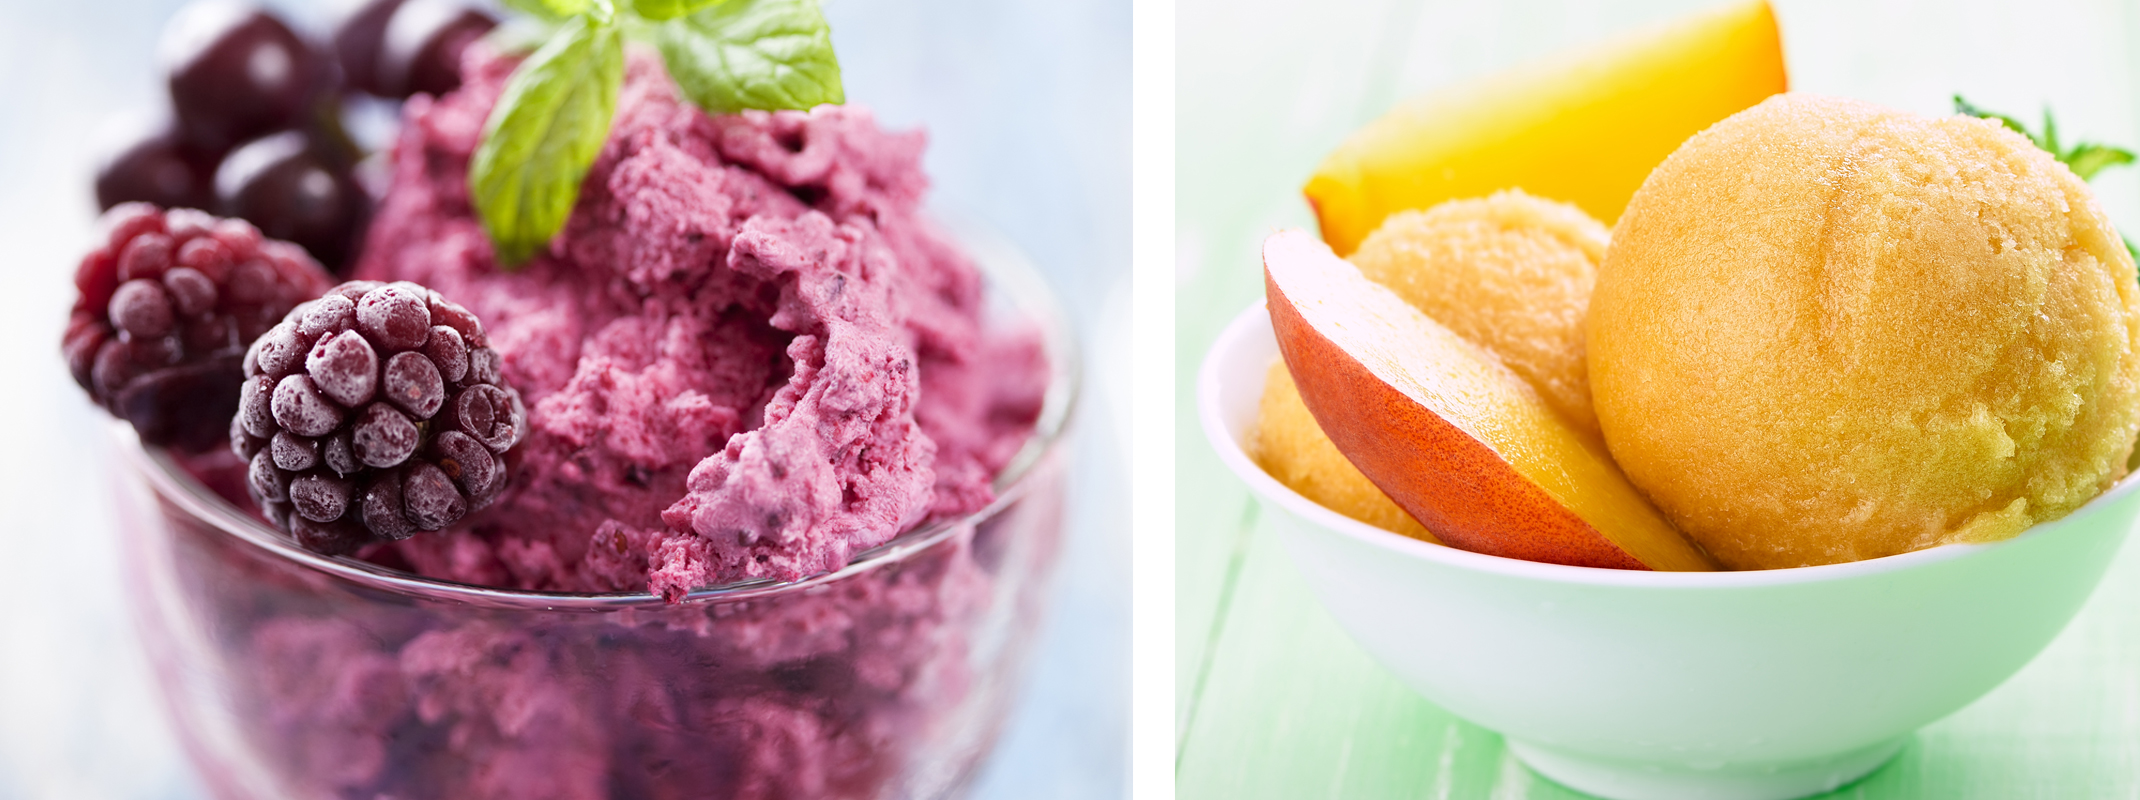 Freshly made boysenberry and blueberry icecream with fresh berries on top and a sprig of mint and a fresh made peach ice ceam with fresh peaches on top in a white bowl